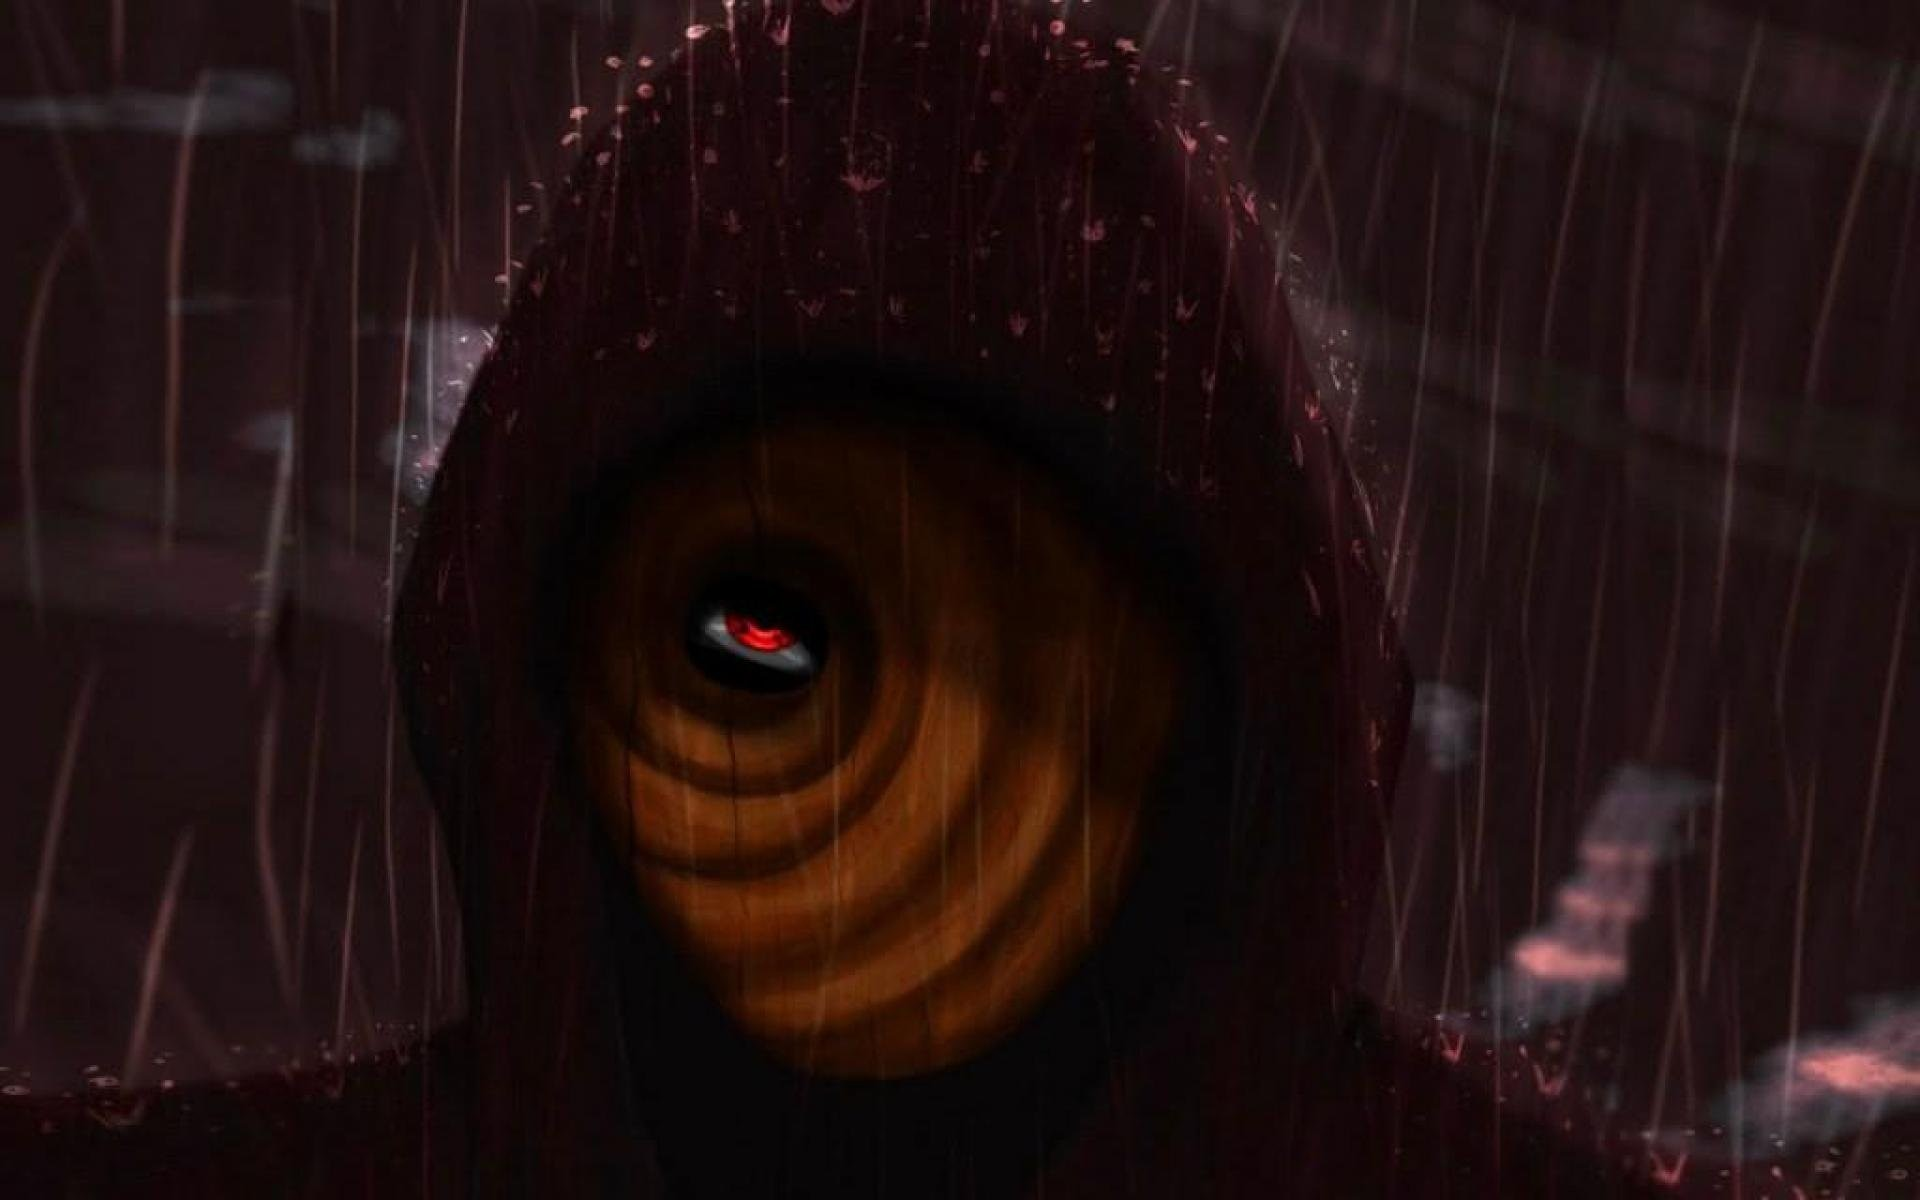 1920x1200 159 Obito Uchiha HD Wallpapers | Backgrounds - Wallpaper Abyss